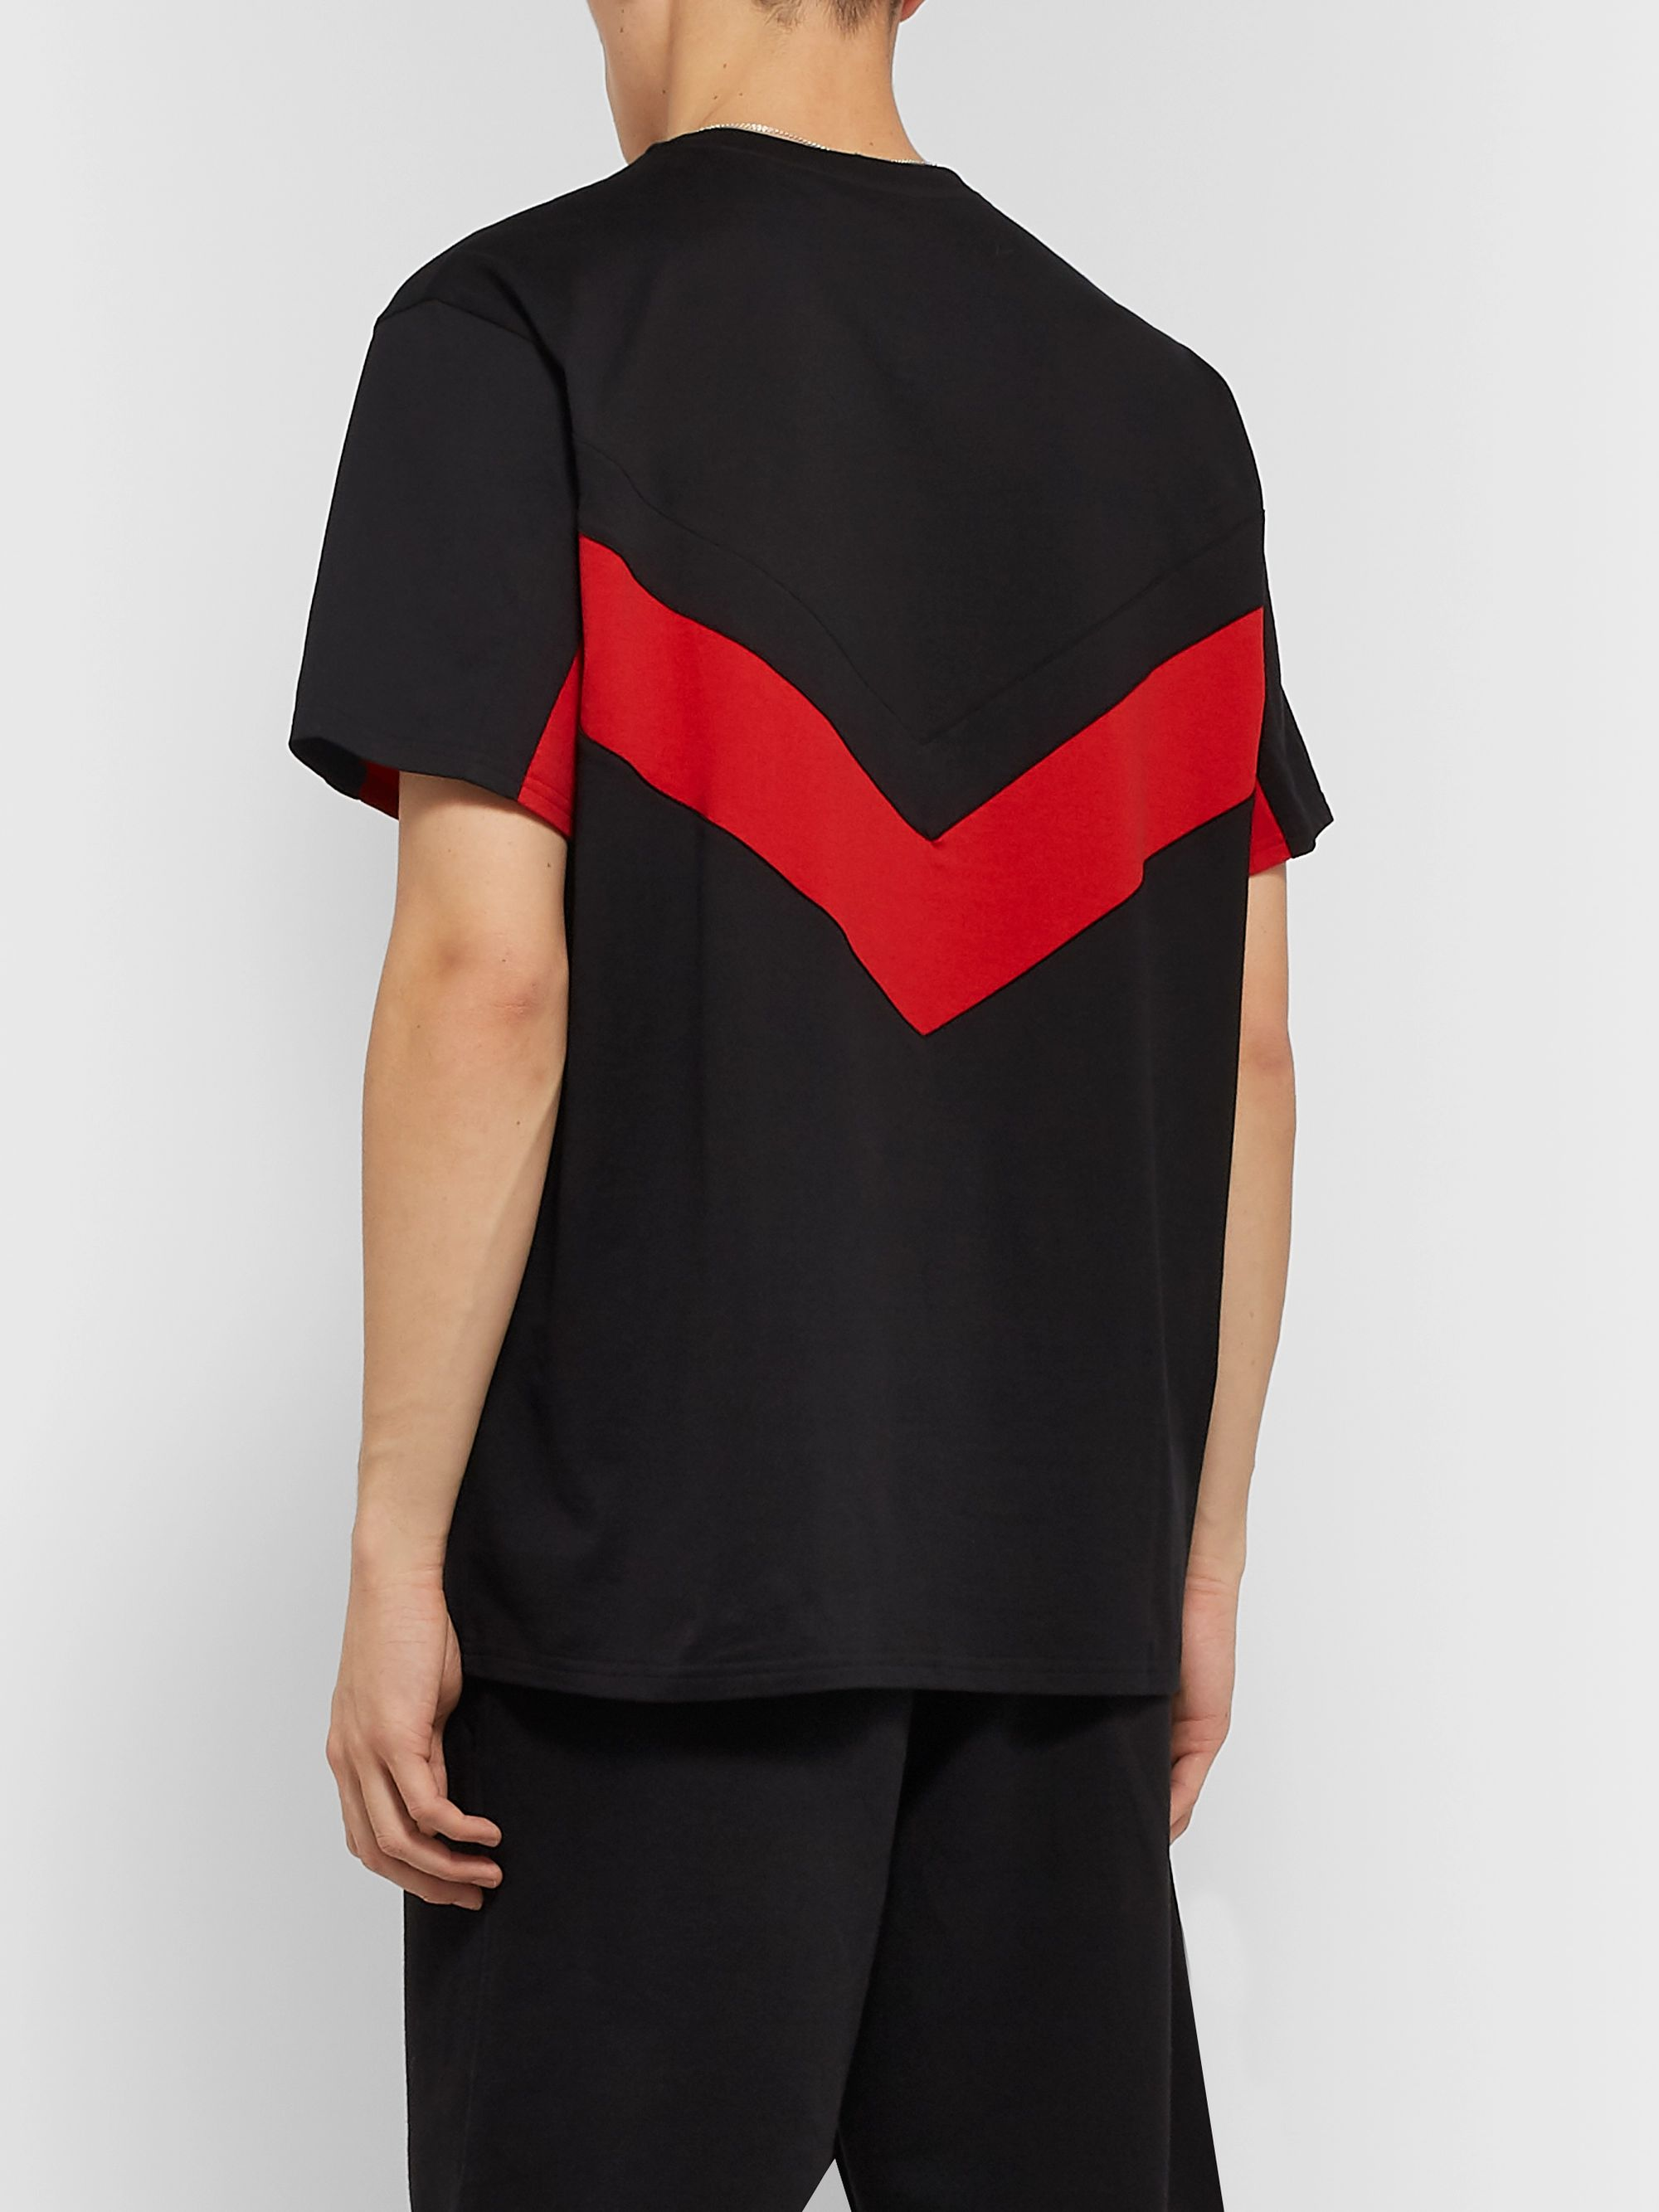 Givenchy Panelled Cotton-Jersey T-Shirt